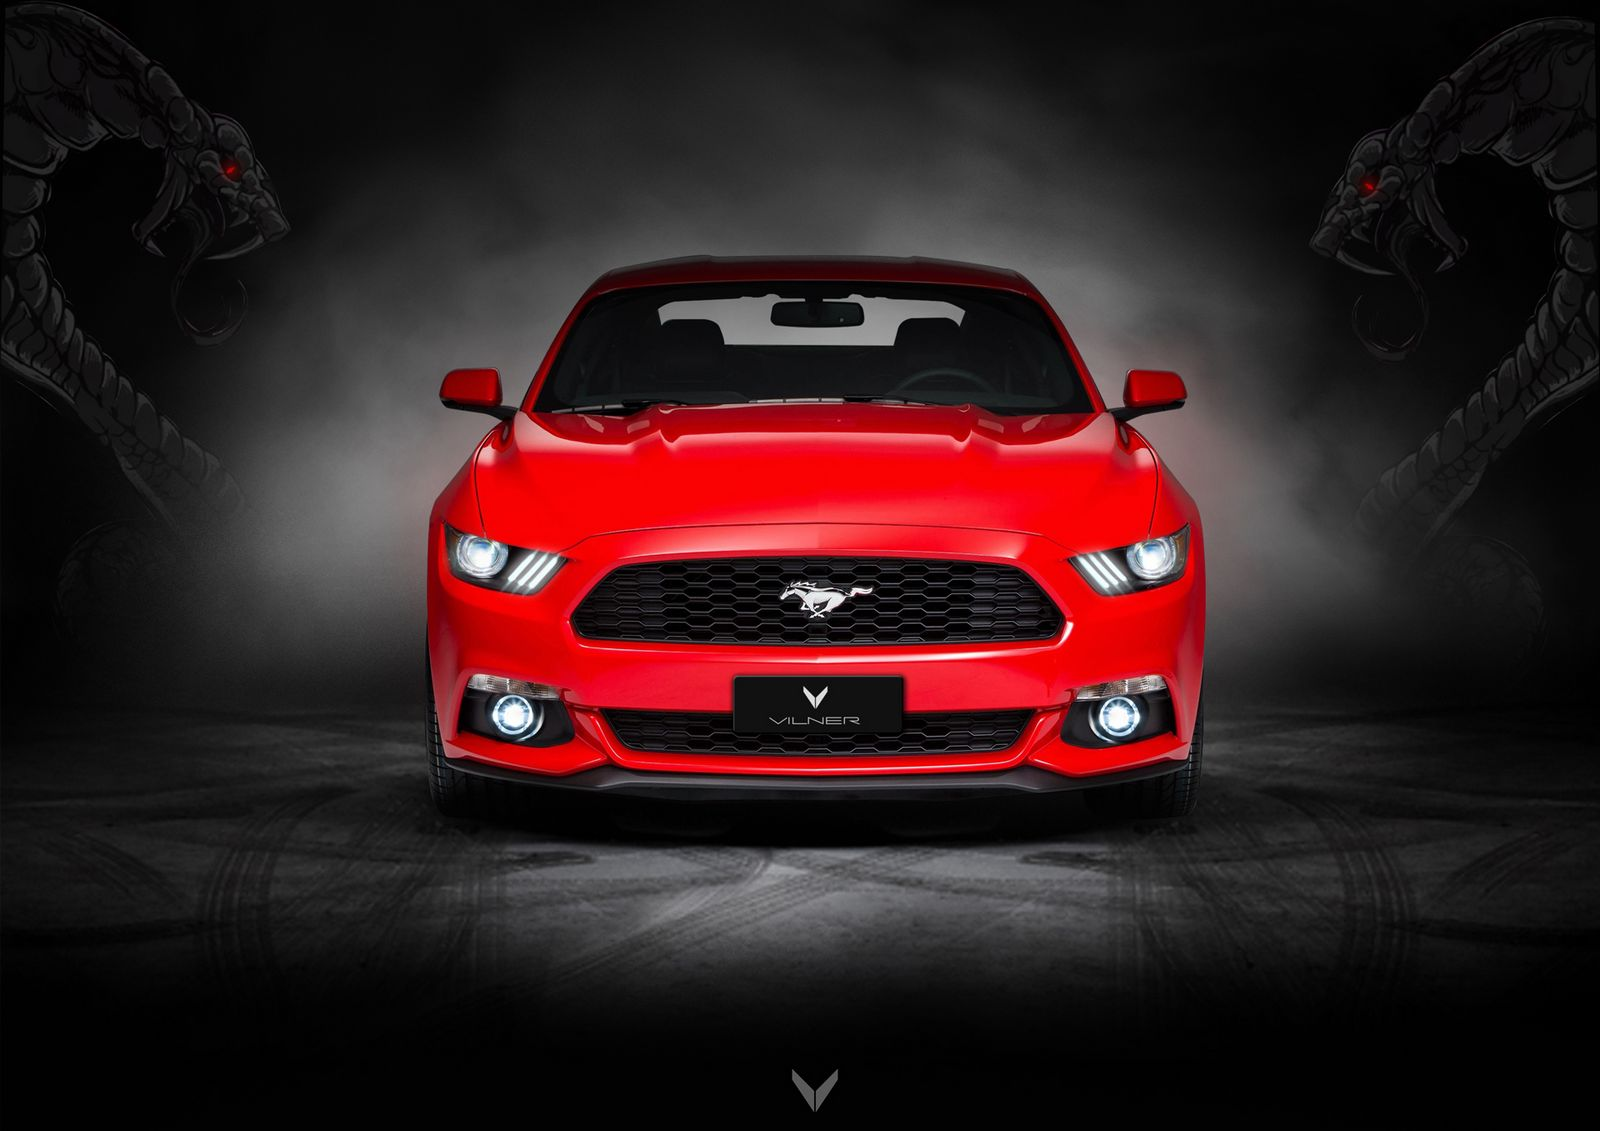 Ford_Mustang_by_Vilner_08